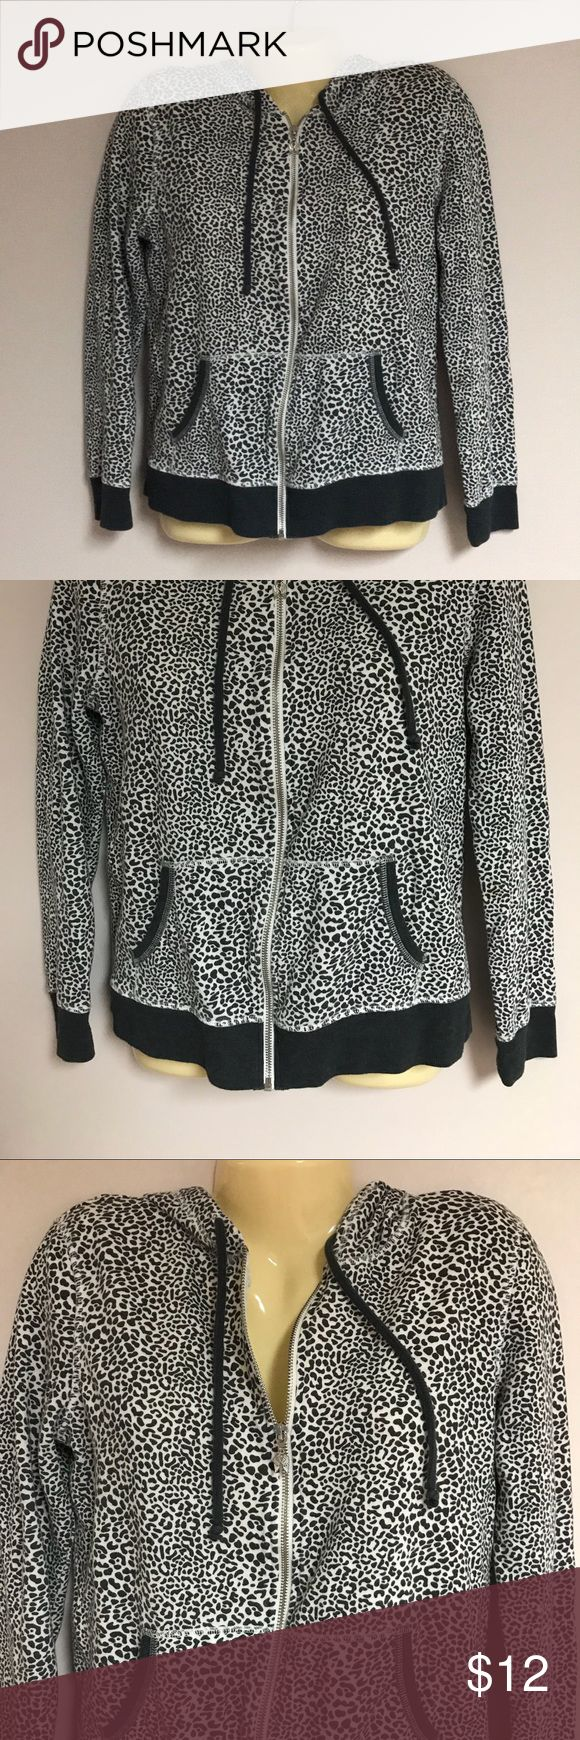 VICTORIA'S SECRET Zip Up Animal Print Hoodie VICTORIA'S SECRET Zip Up Animal Print Hoodie. Size medium.   Bundle any two items and save 20%. Bundling saves on shipping too. Victoria's Secret Jackets & Coats